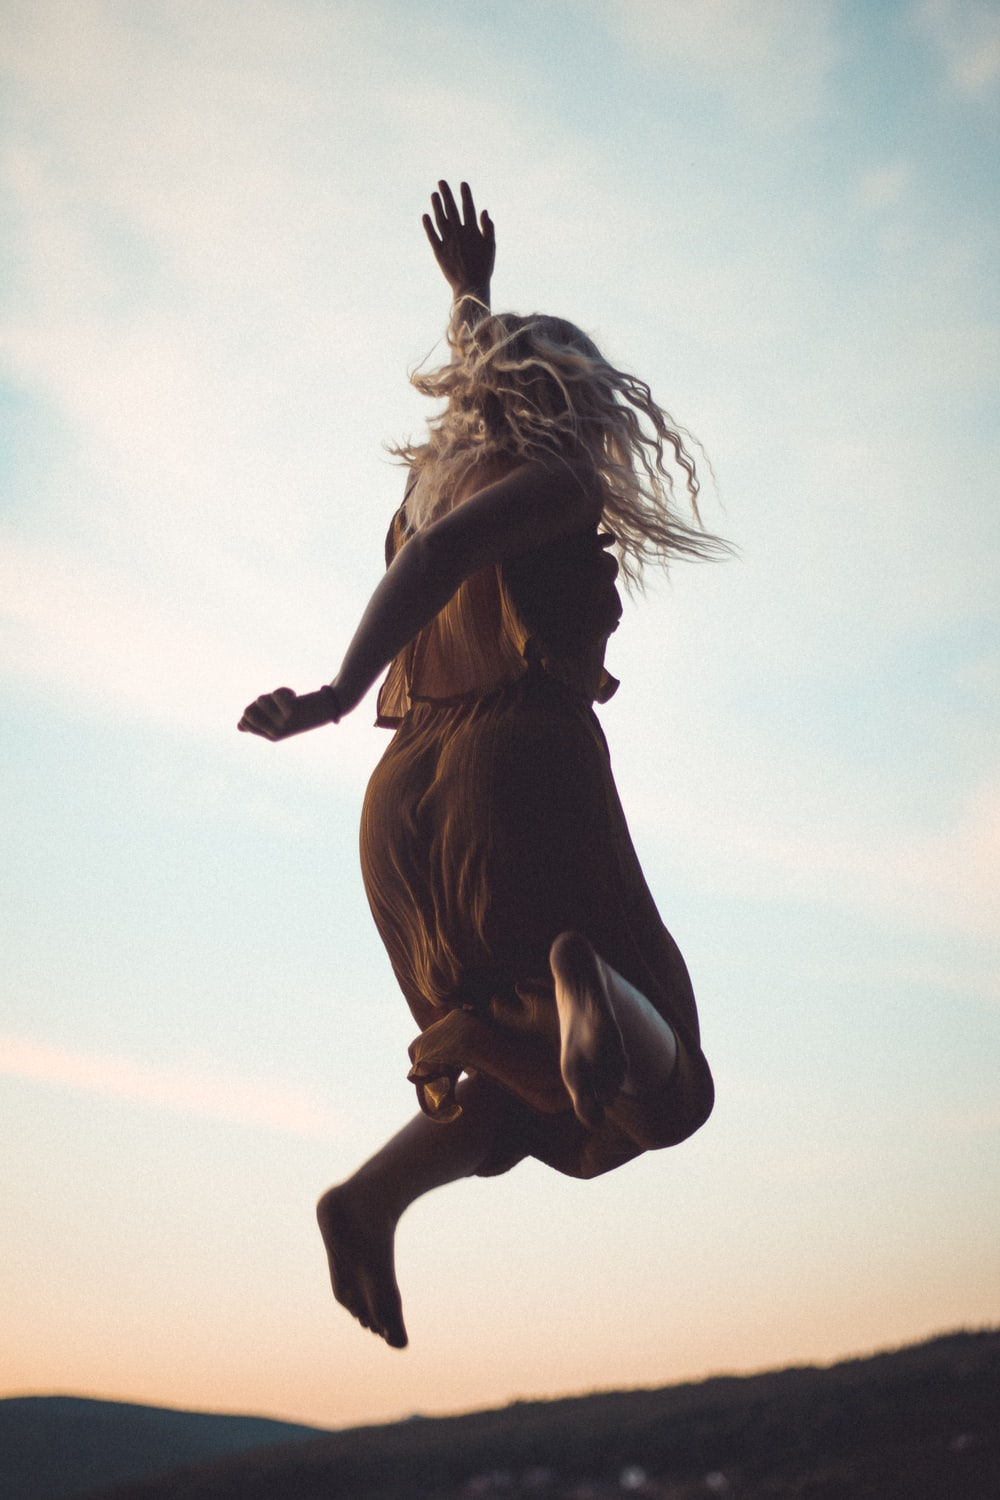 woman in jumping position